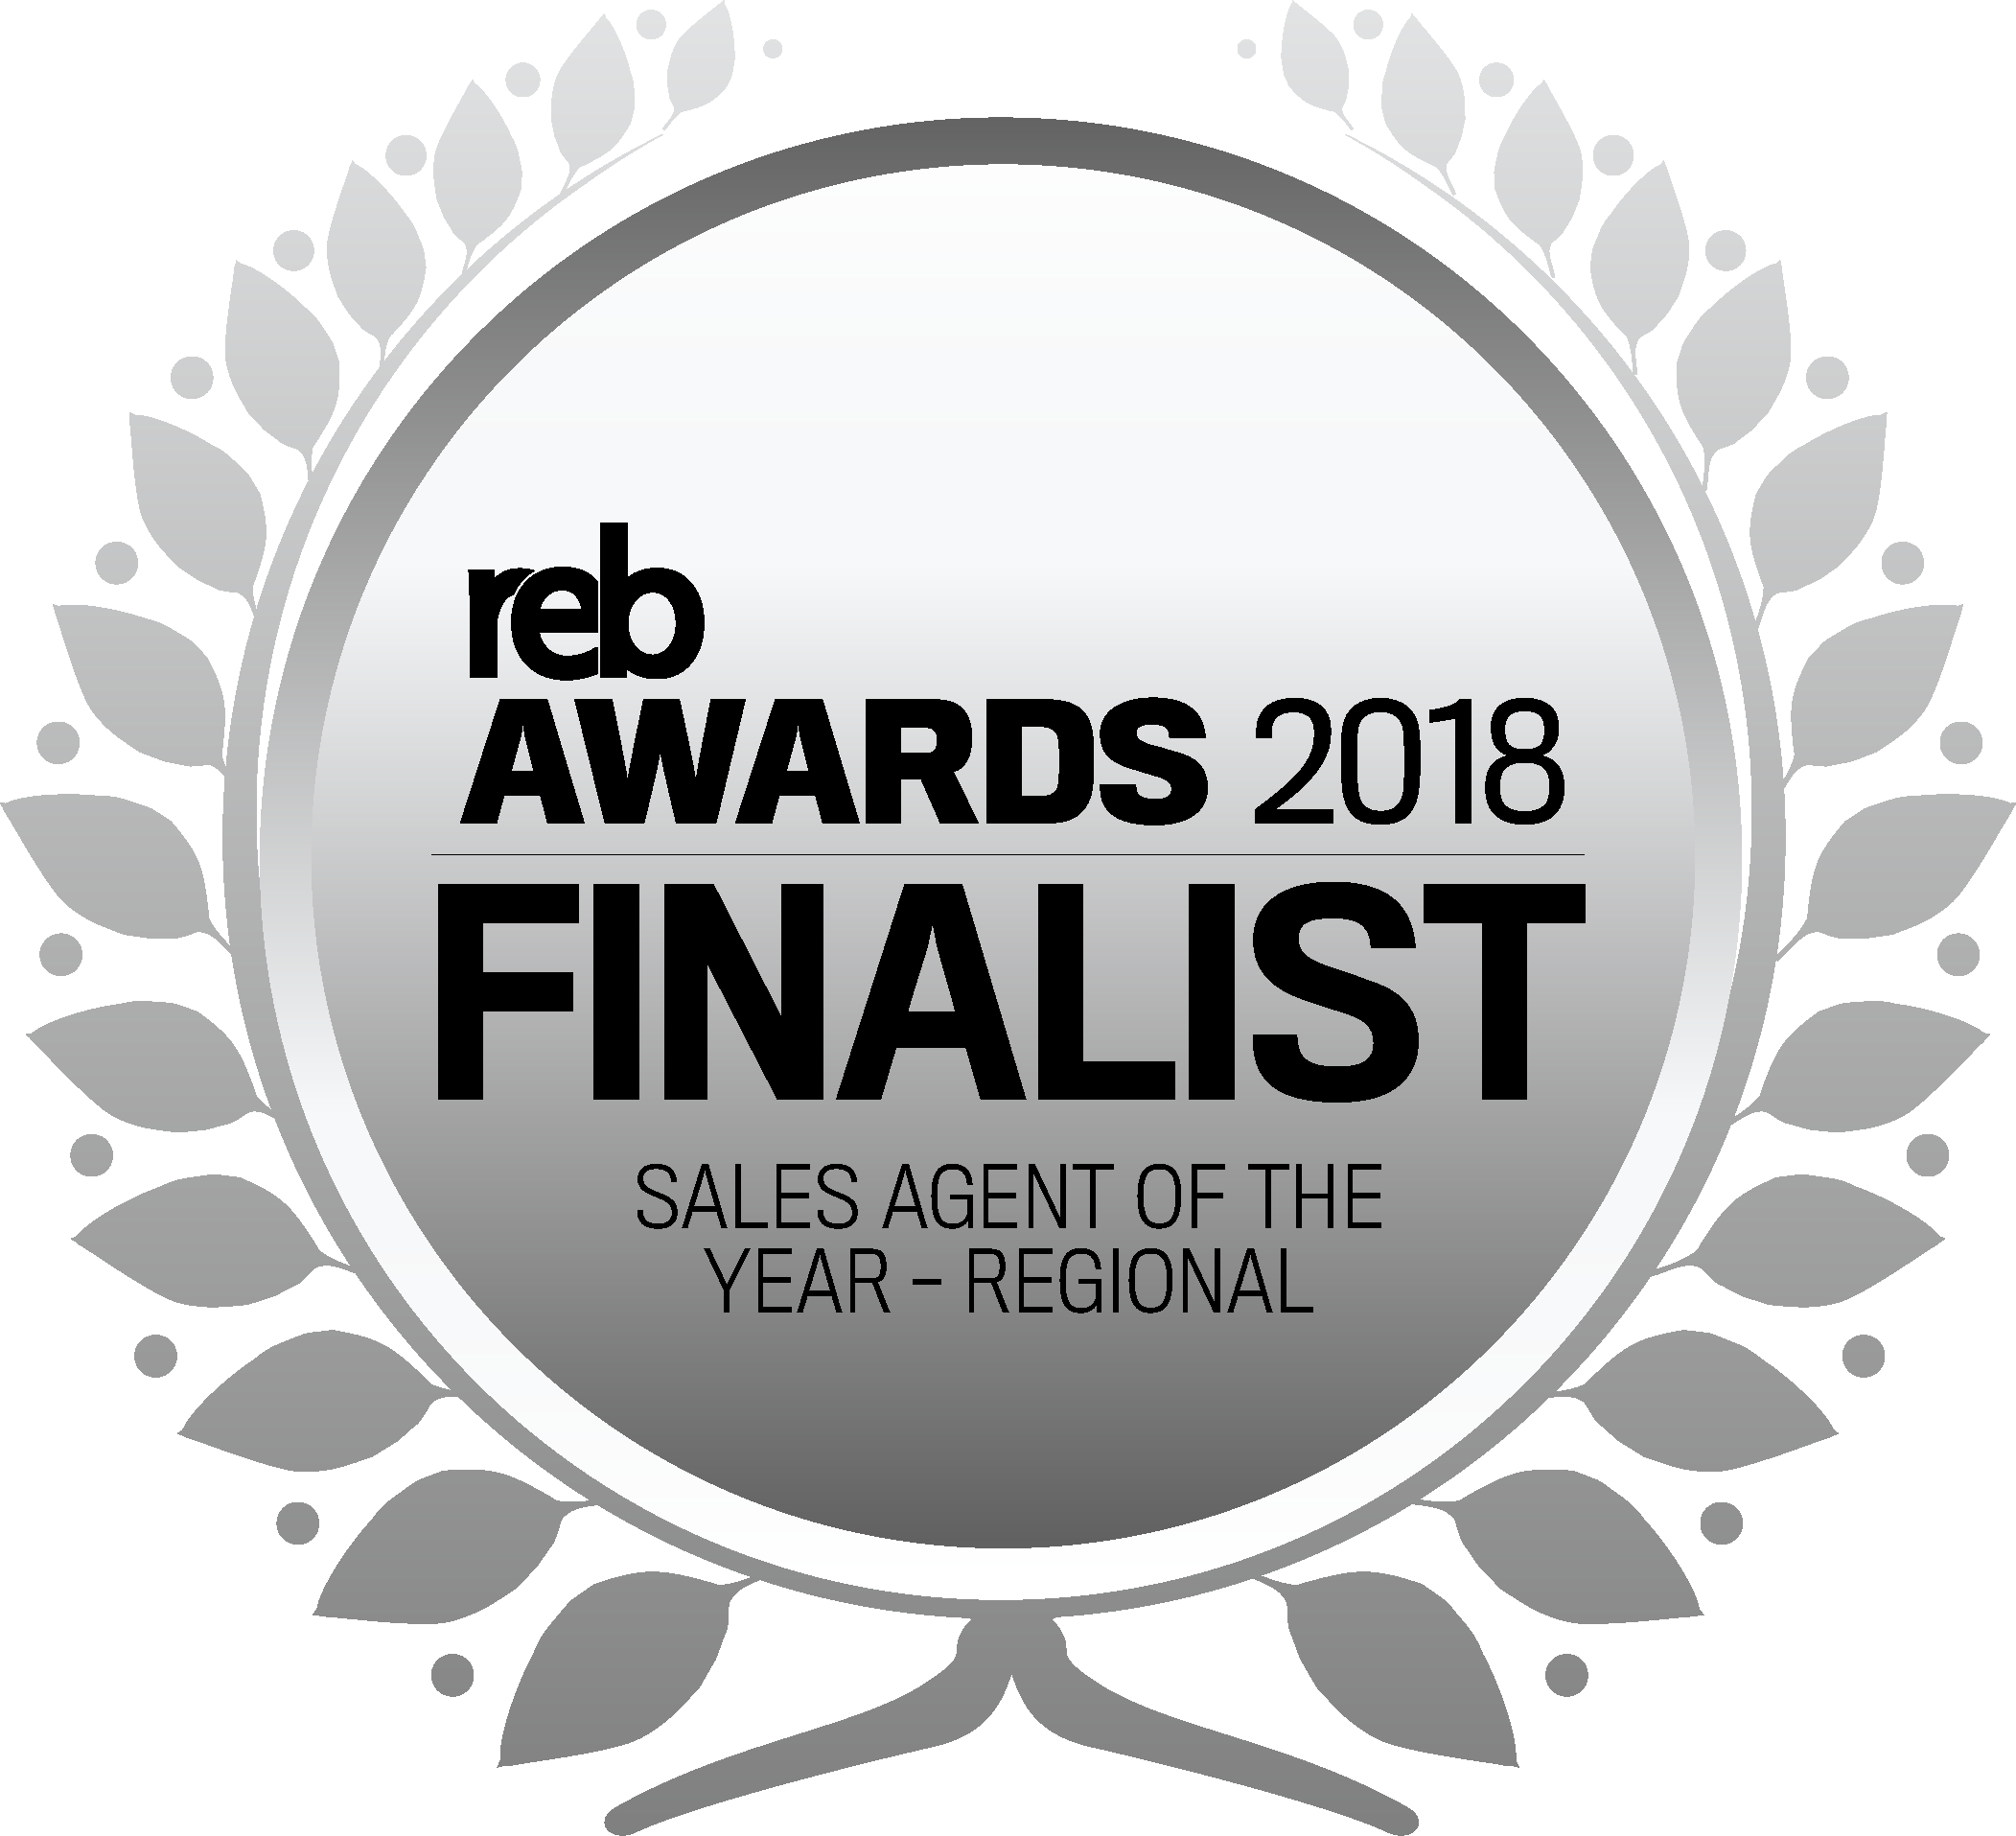 Sales Agent of the Year - Regional